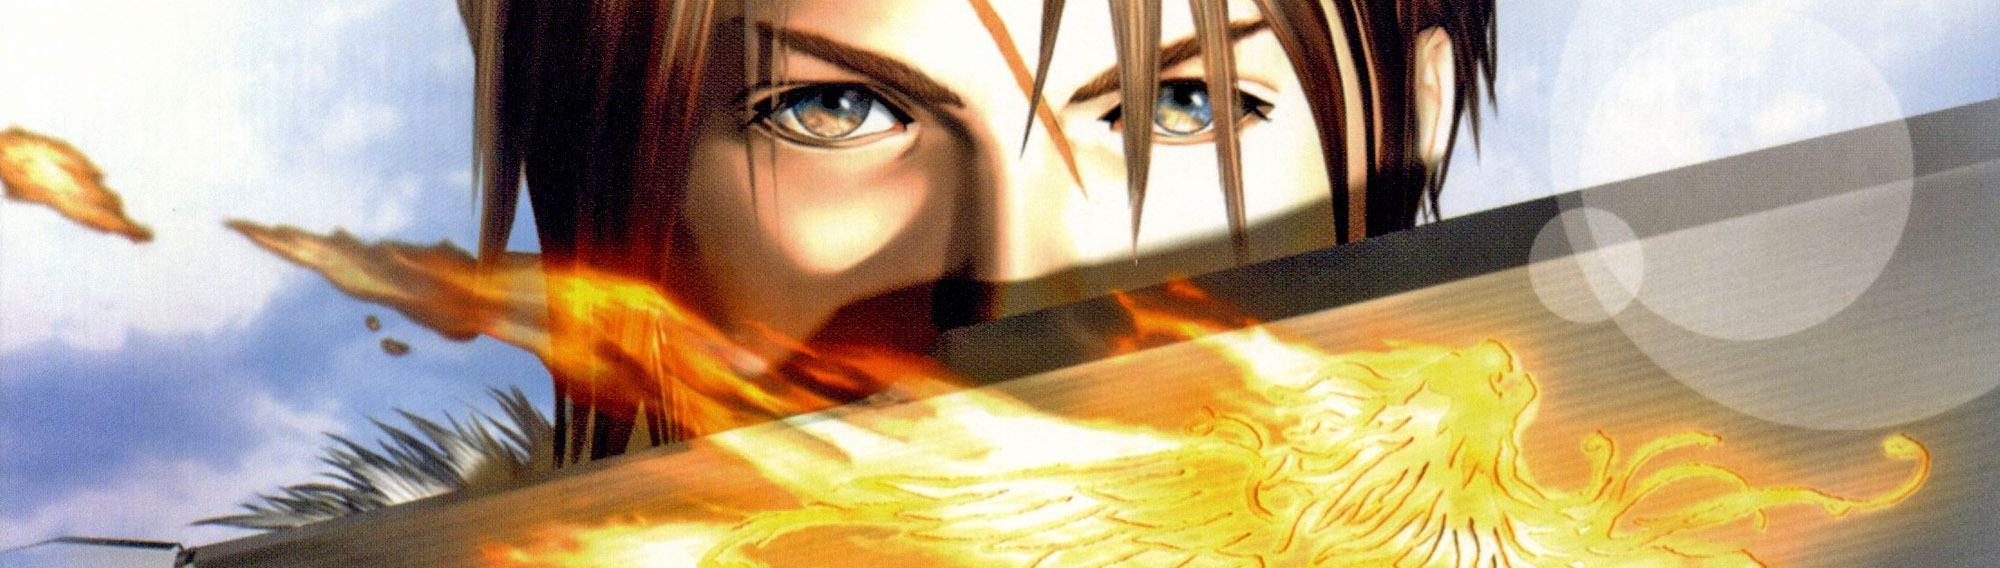 Final Fantasy 8 cover line